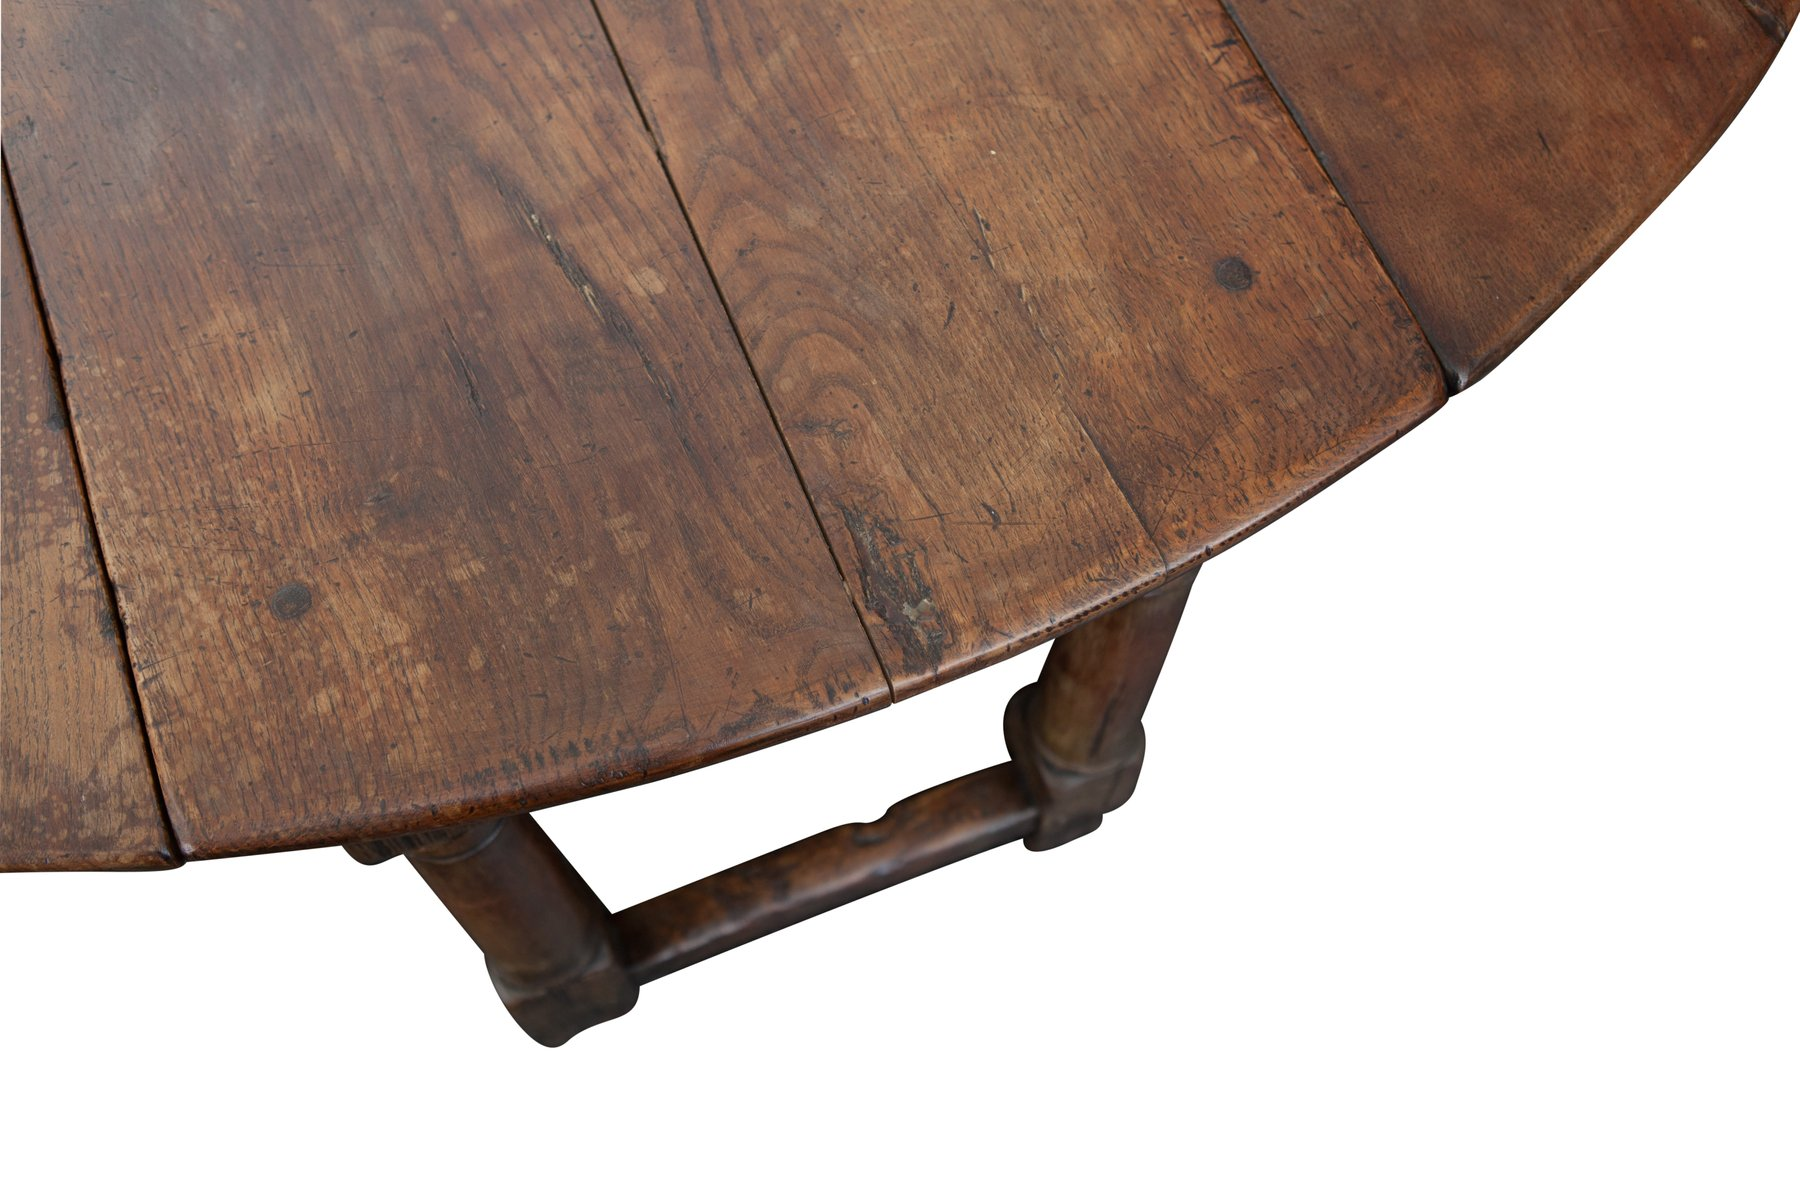 Antique Drop Leaf Table 19th Century for sale at Pamono